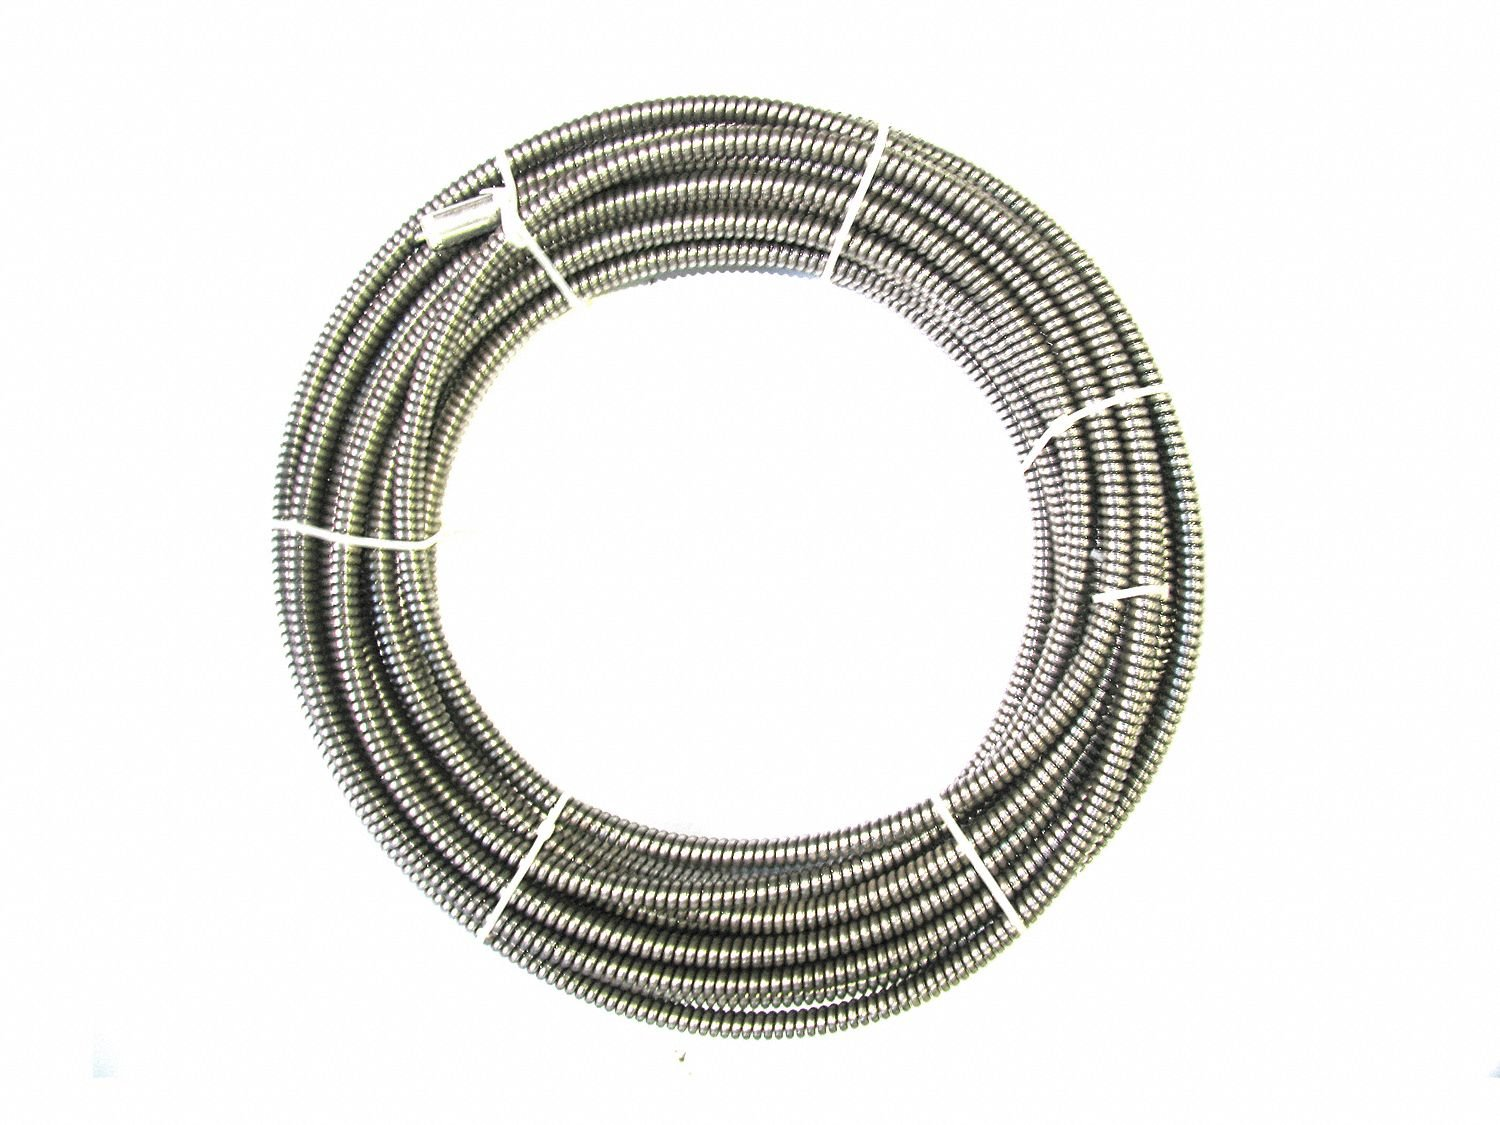 Hollow Core Drain Cleaning Cable 5/8'' x 100 ft.